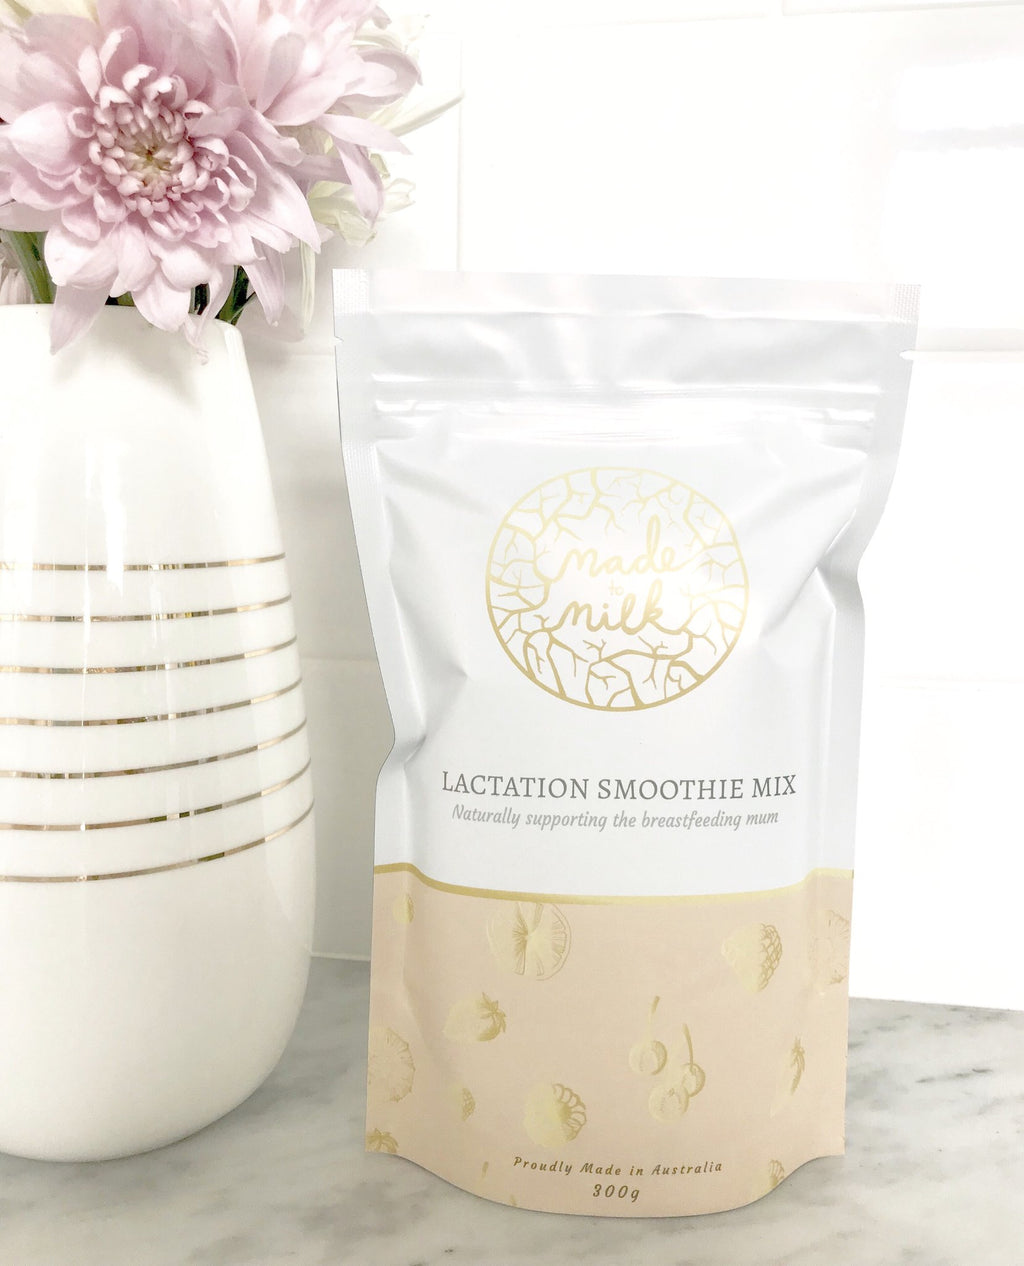 Made to Milk- Lactation Smoothie Mix